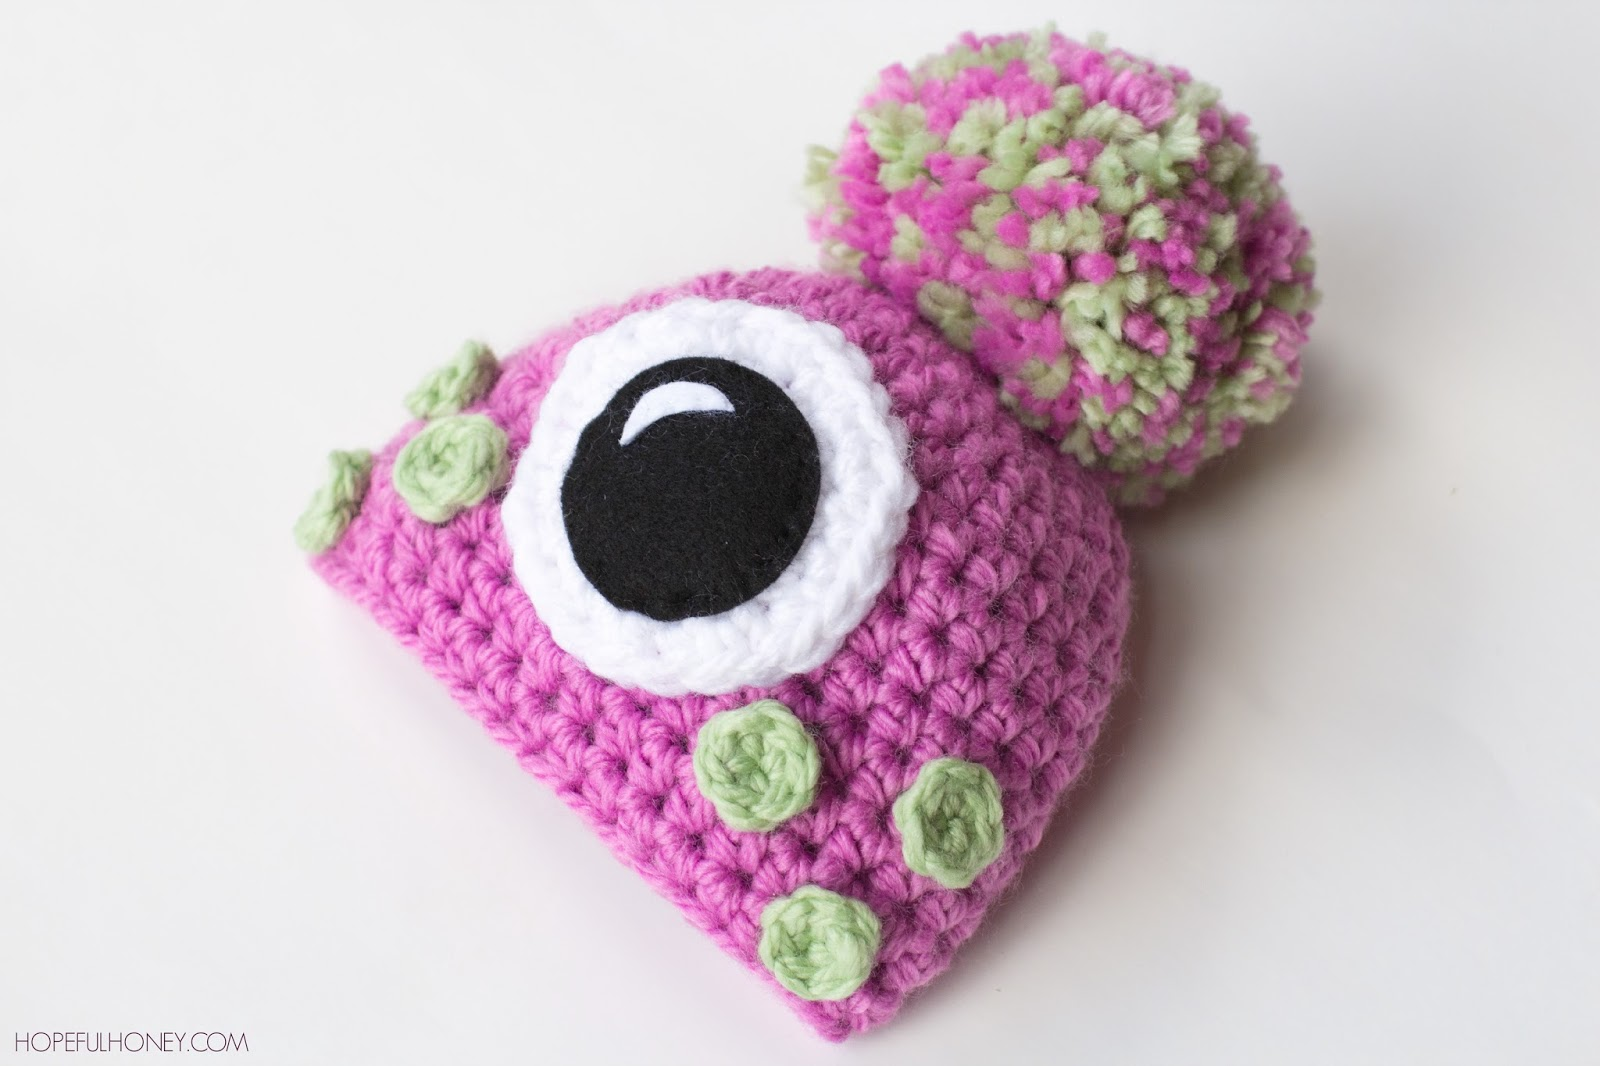 Free Crochet Pattern For Tinkerbell Hat : Hopeful Honey Craft, Crochet, Create: Freckled Baby ...